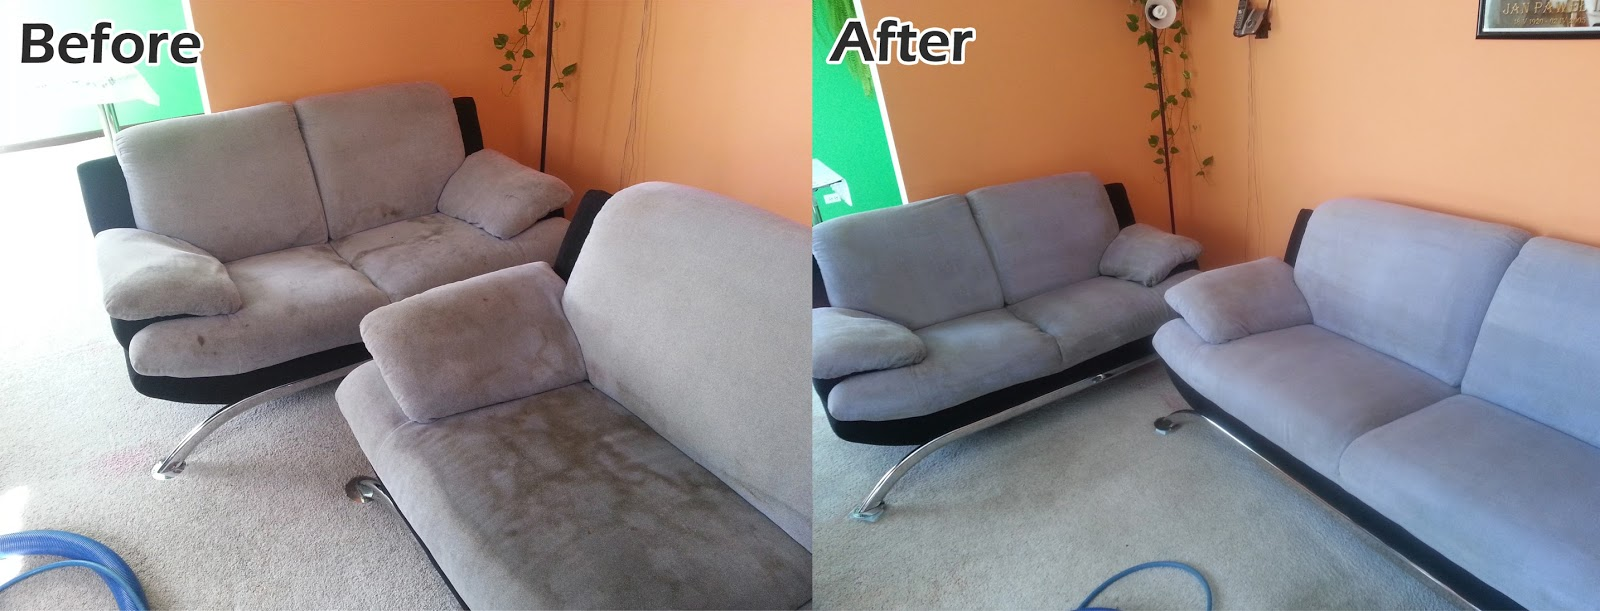 Good Professional Dry Cleaning Of Sofa And Upholstery